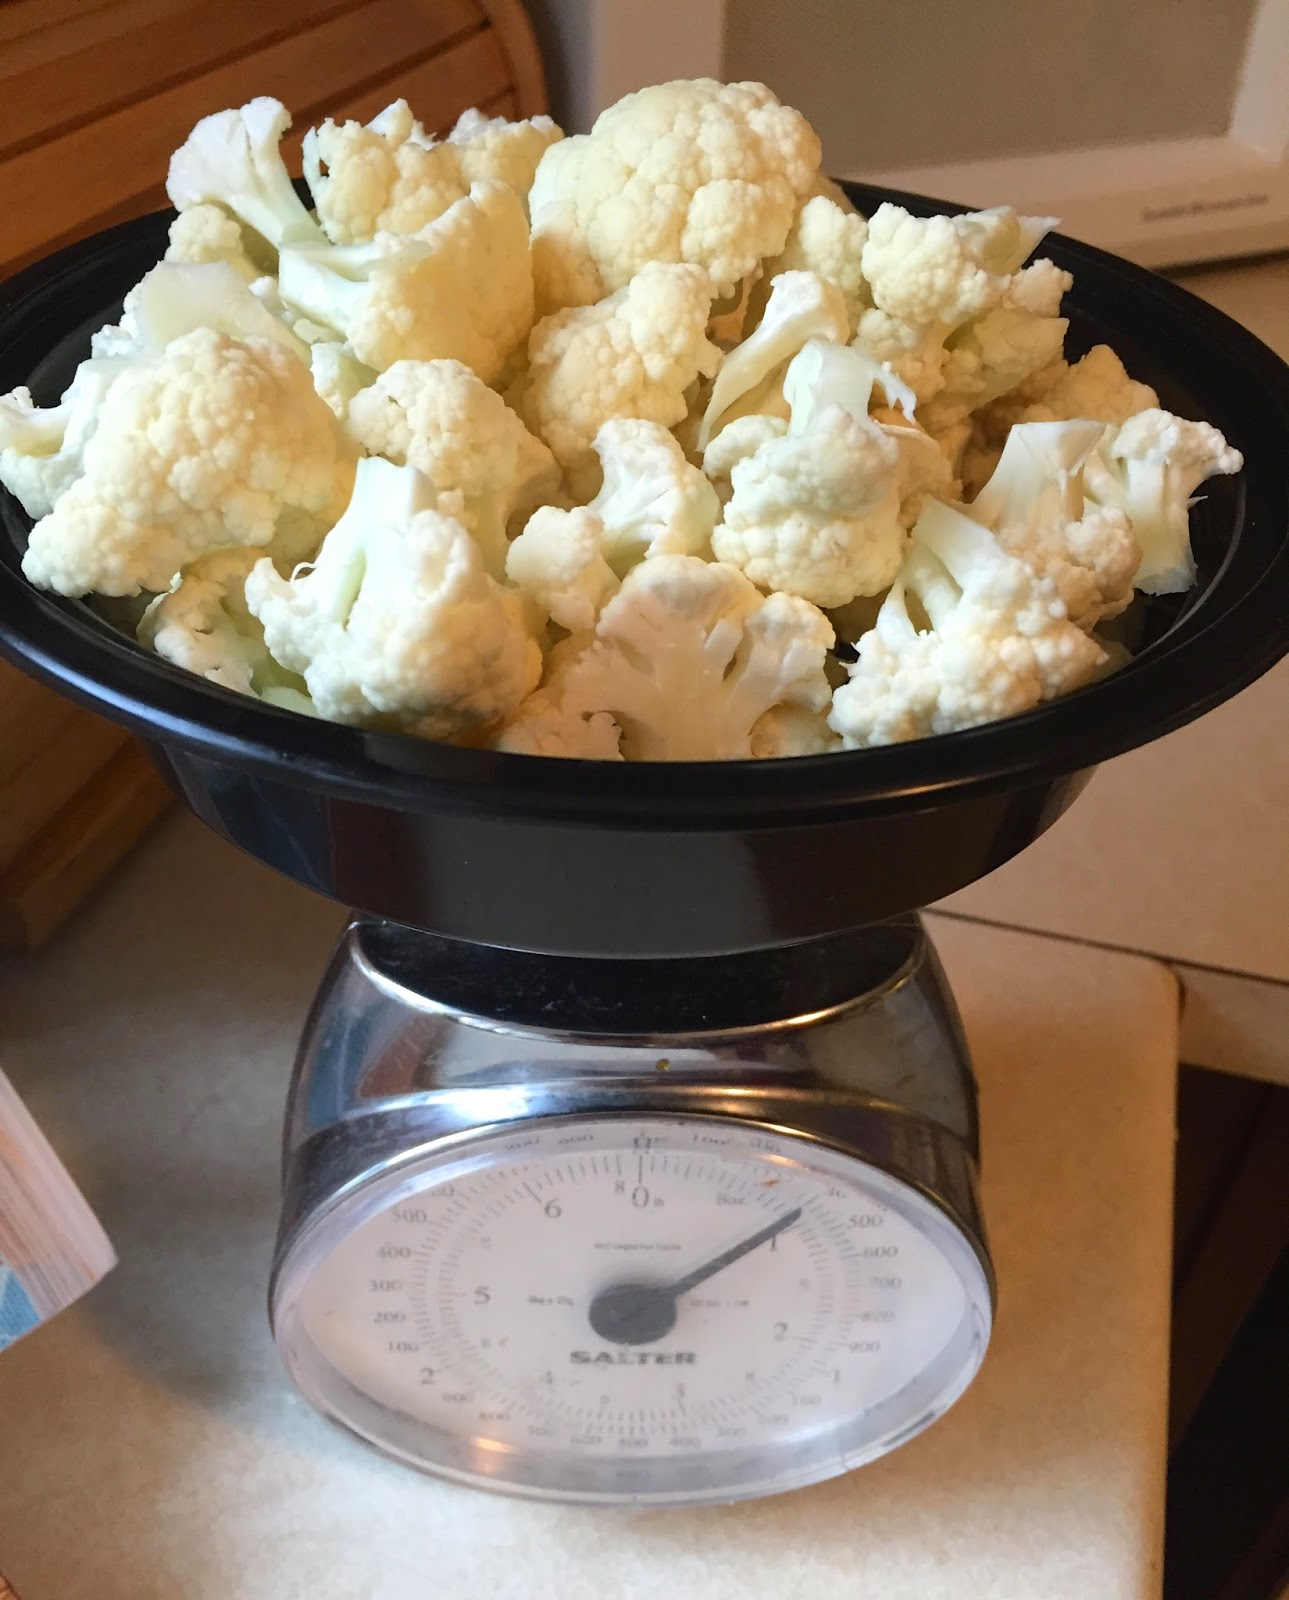 Cauliflower on a Kitchen Scale